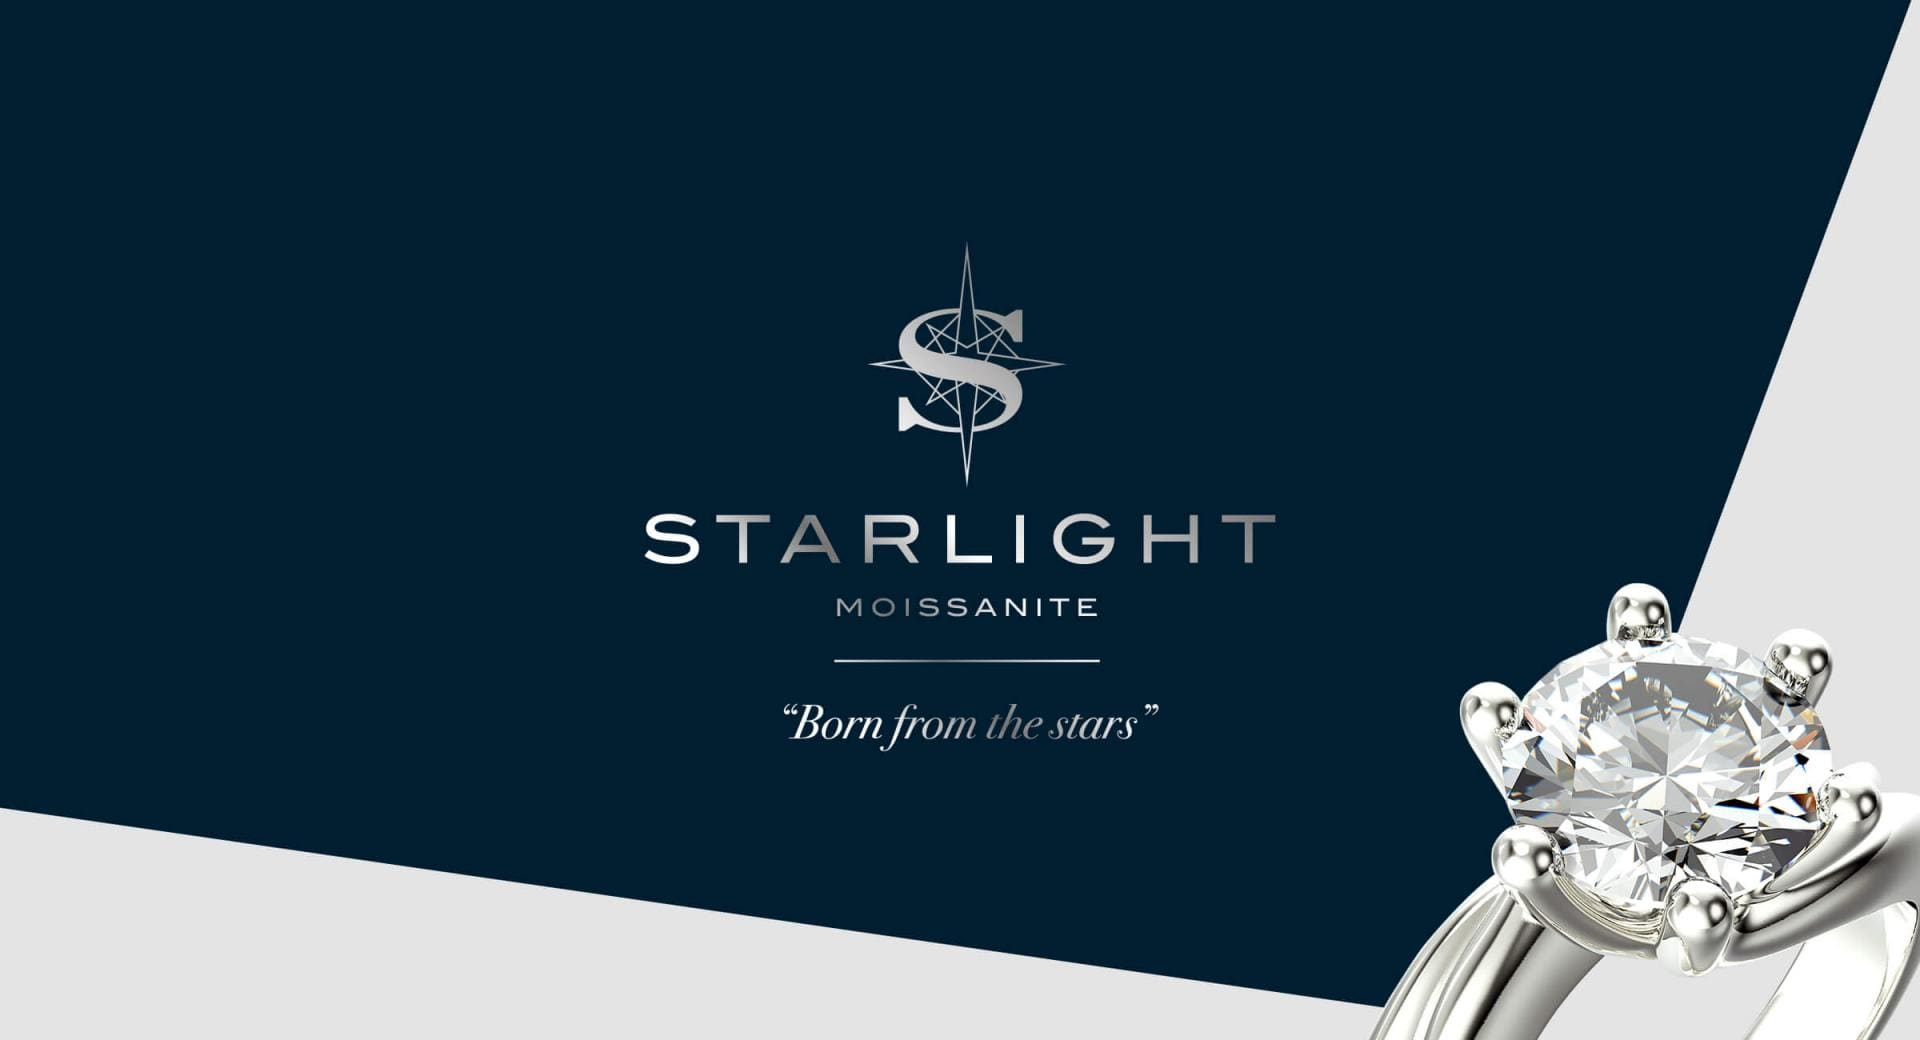 Starlight Moissanite Logo with a picture of a moissanite ring